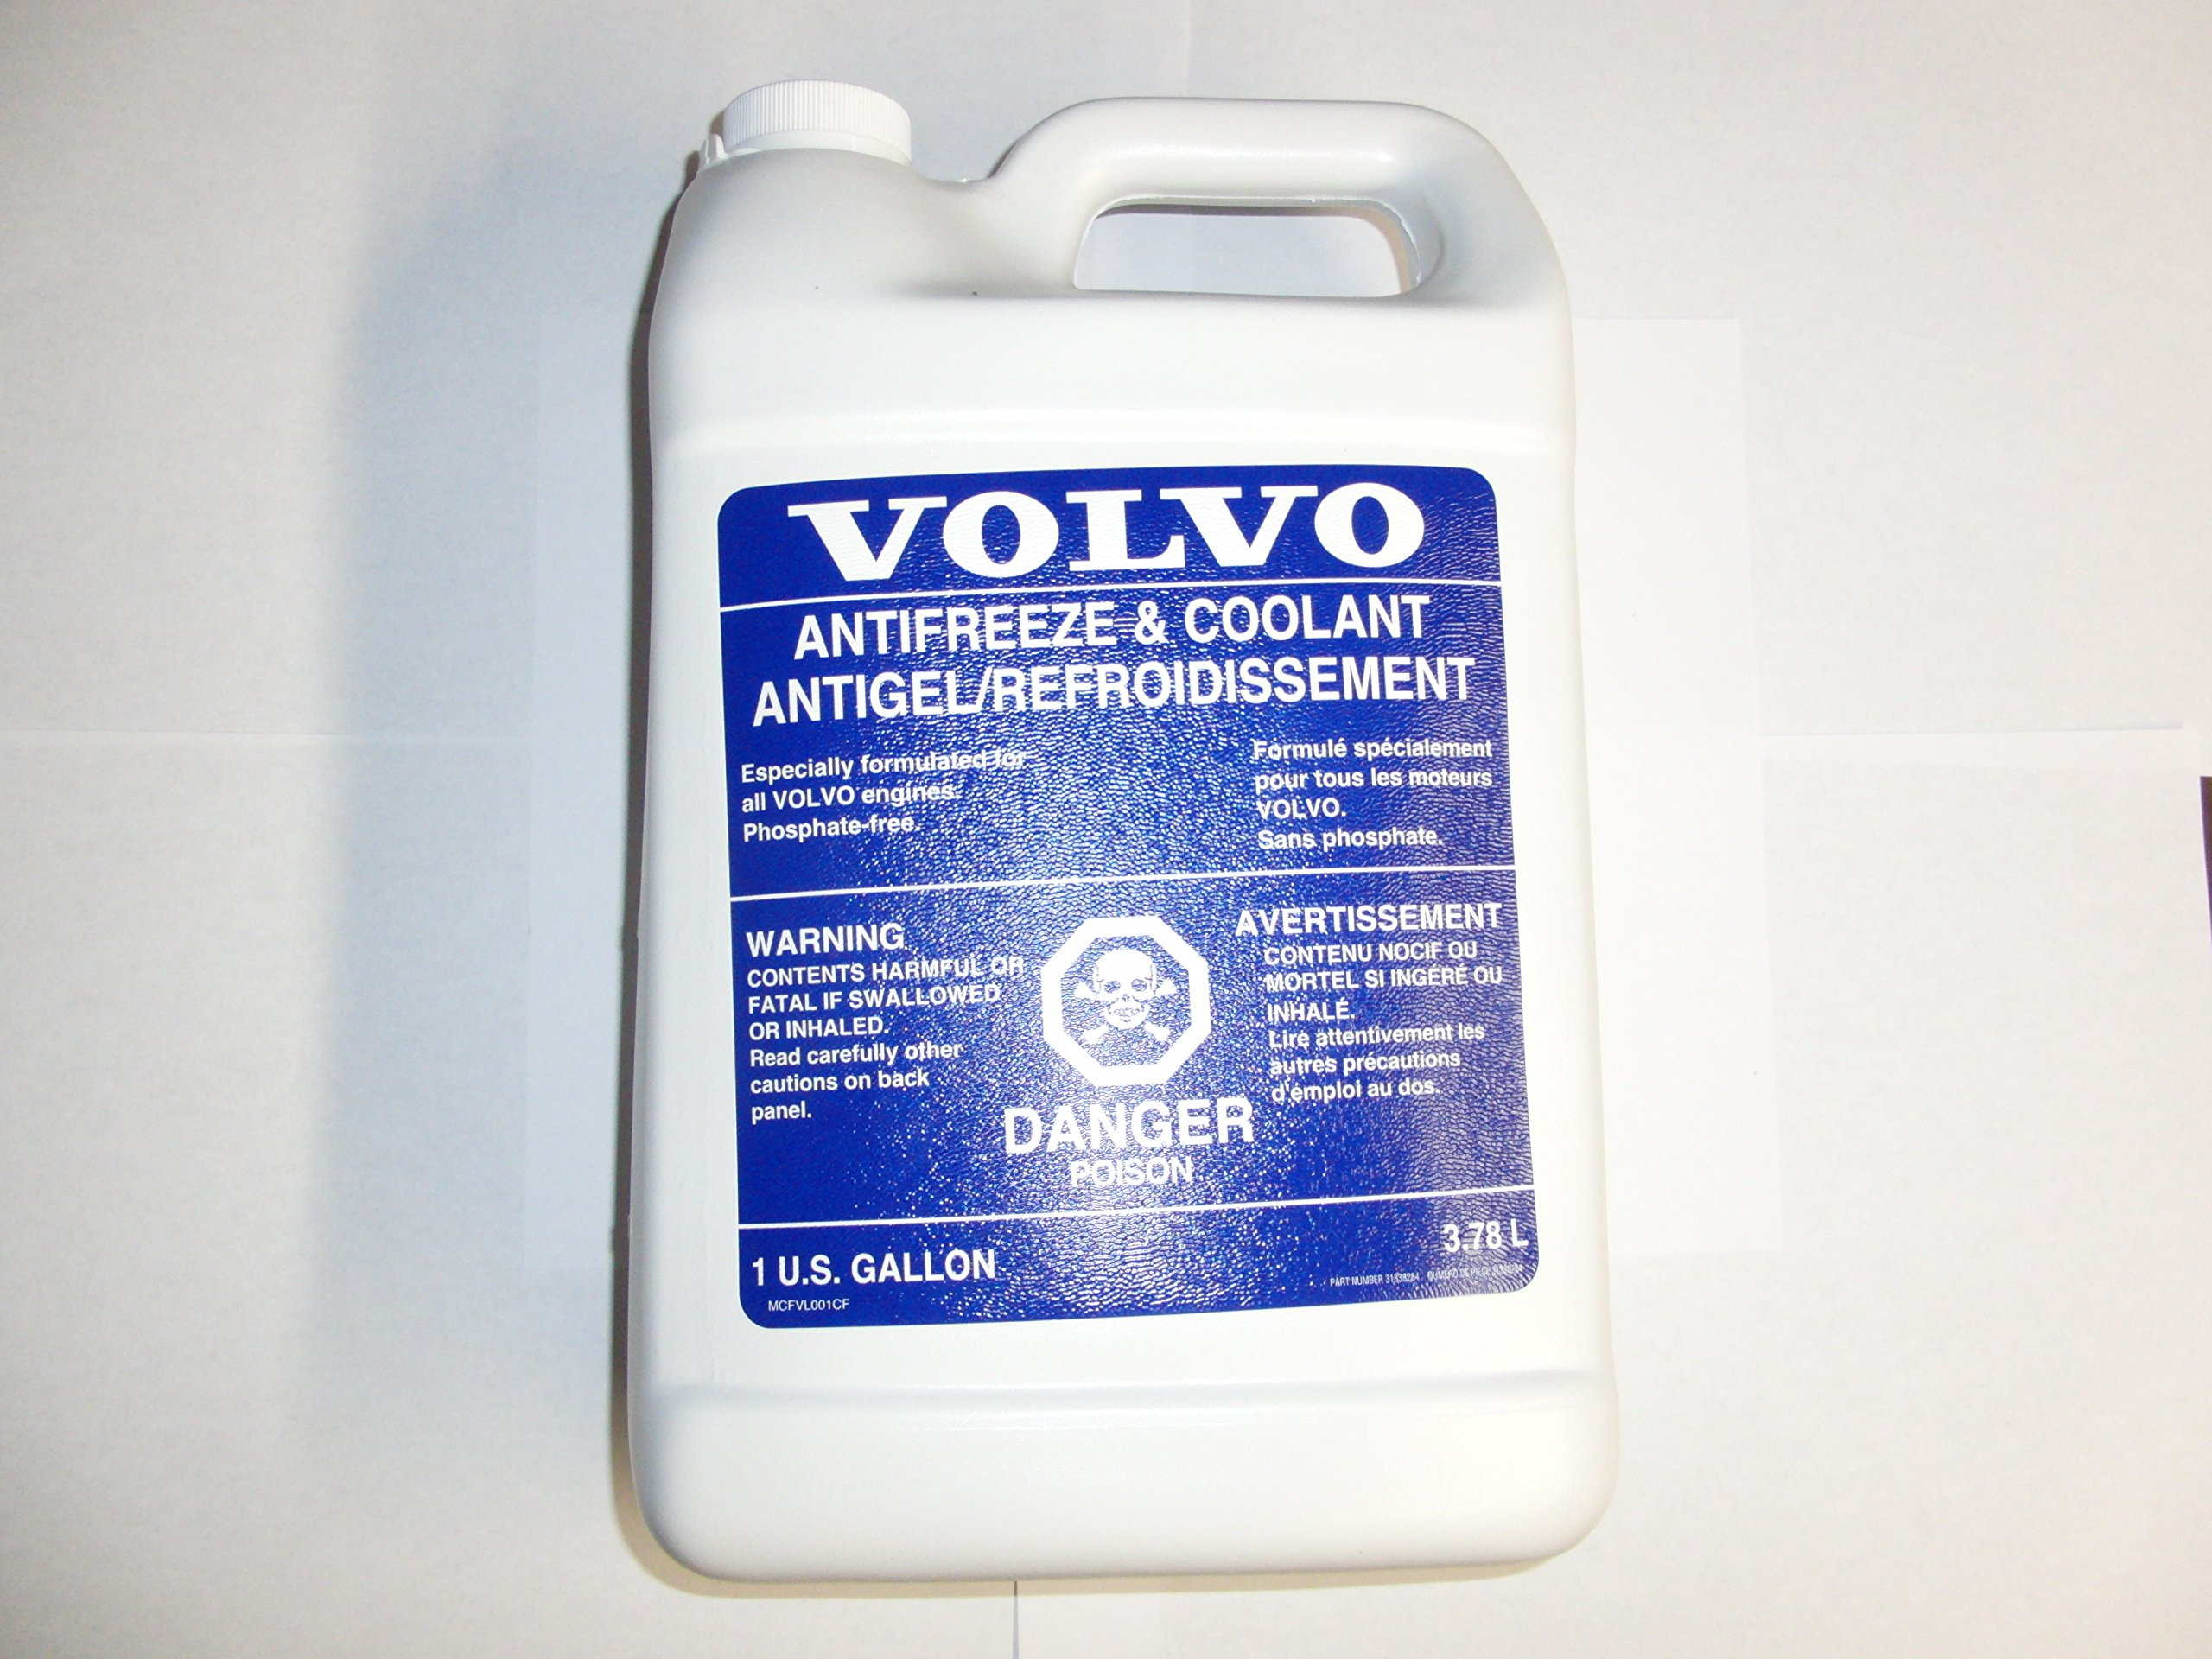 Volvo Anti-freeze